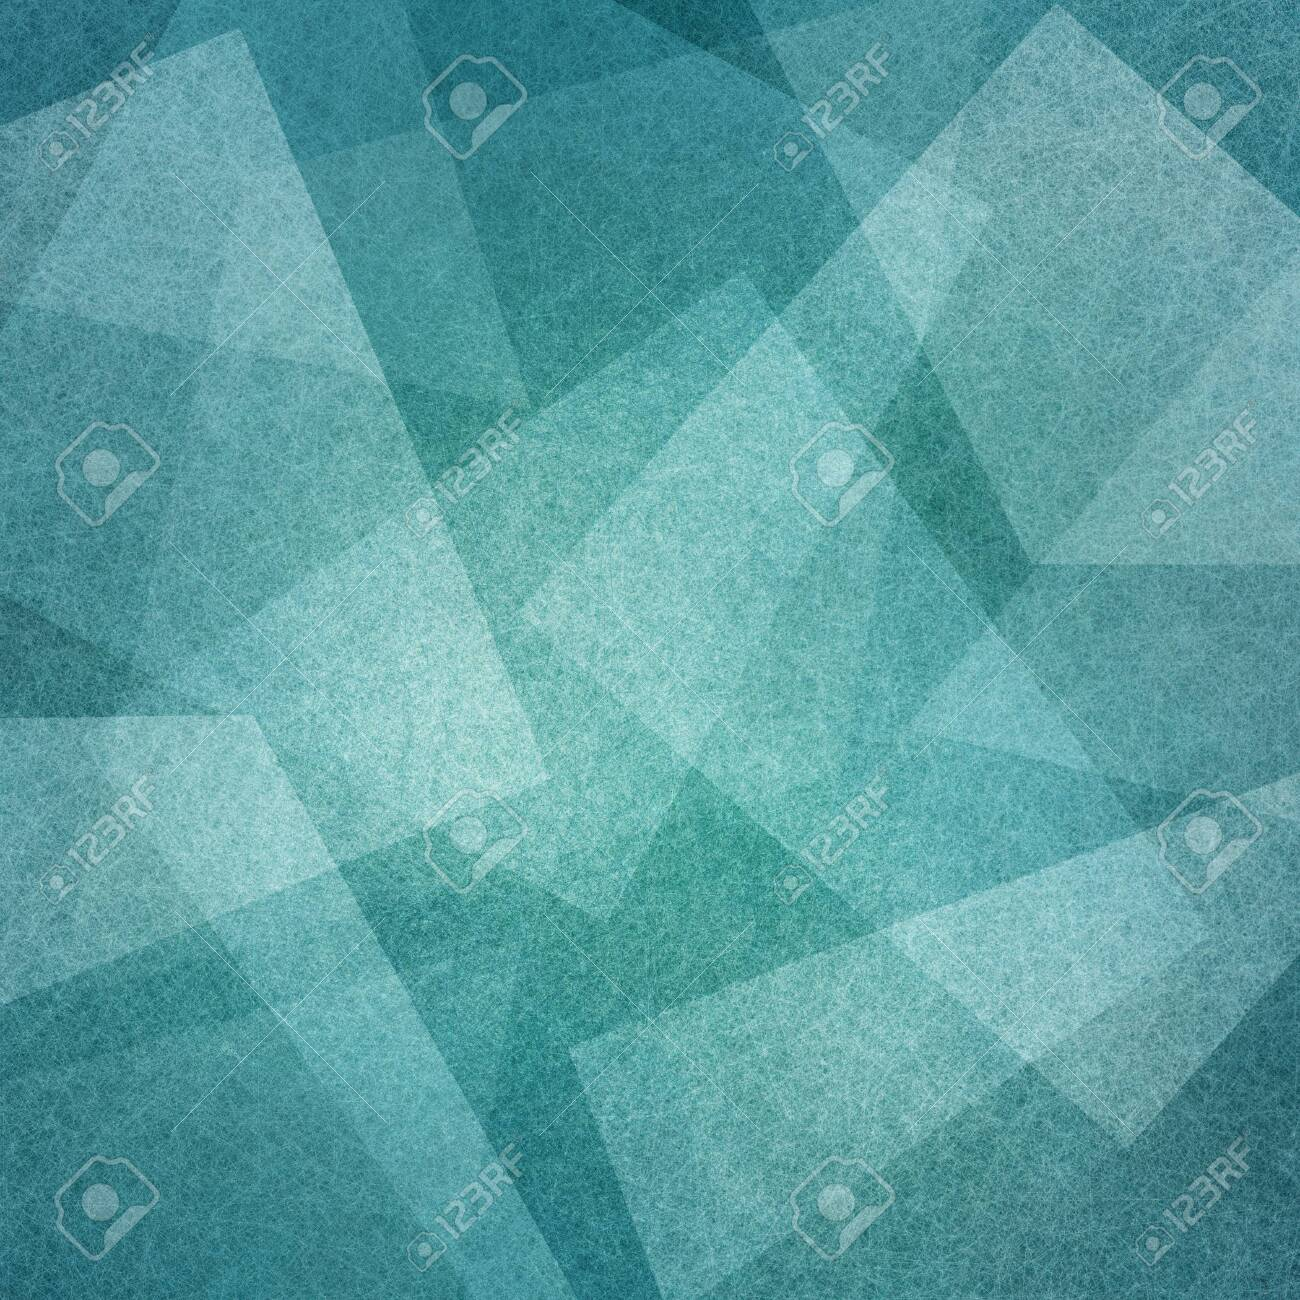 blue background with abstract squares angles and triangle layers in abstract geometric pattern for web and business designs - 122101055